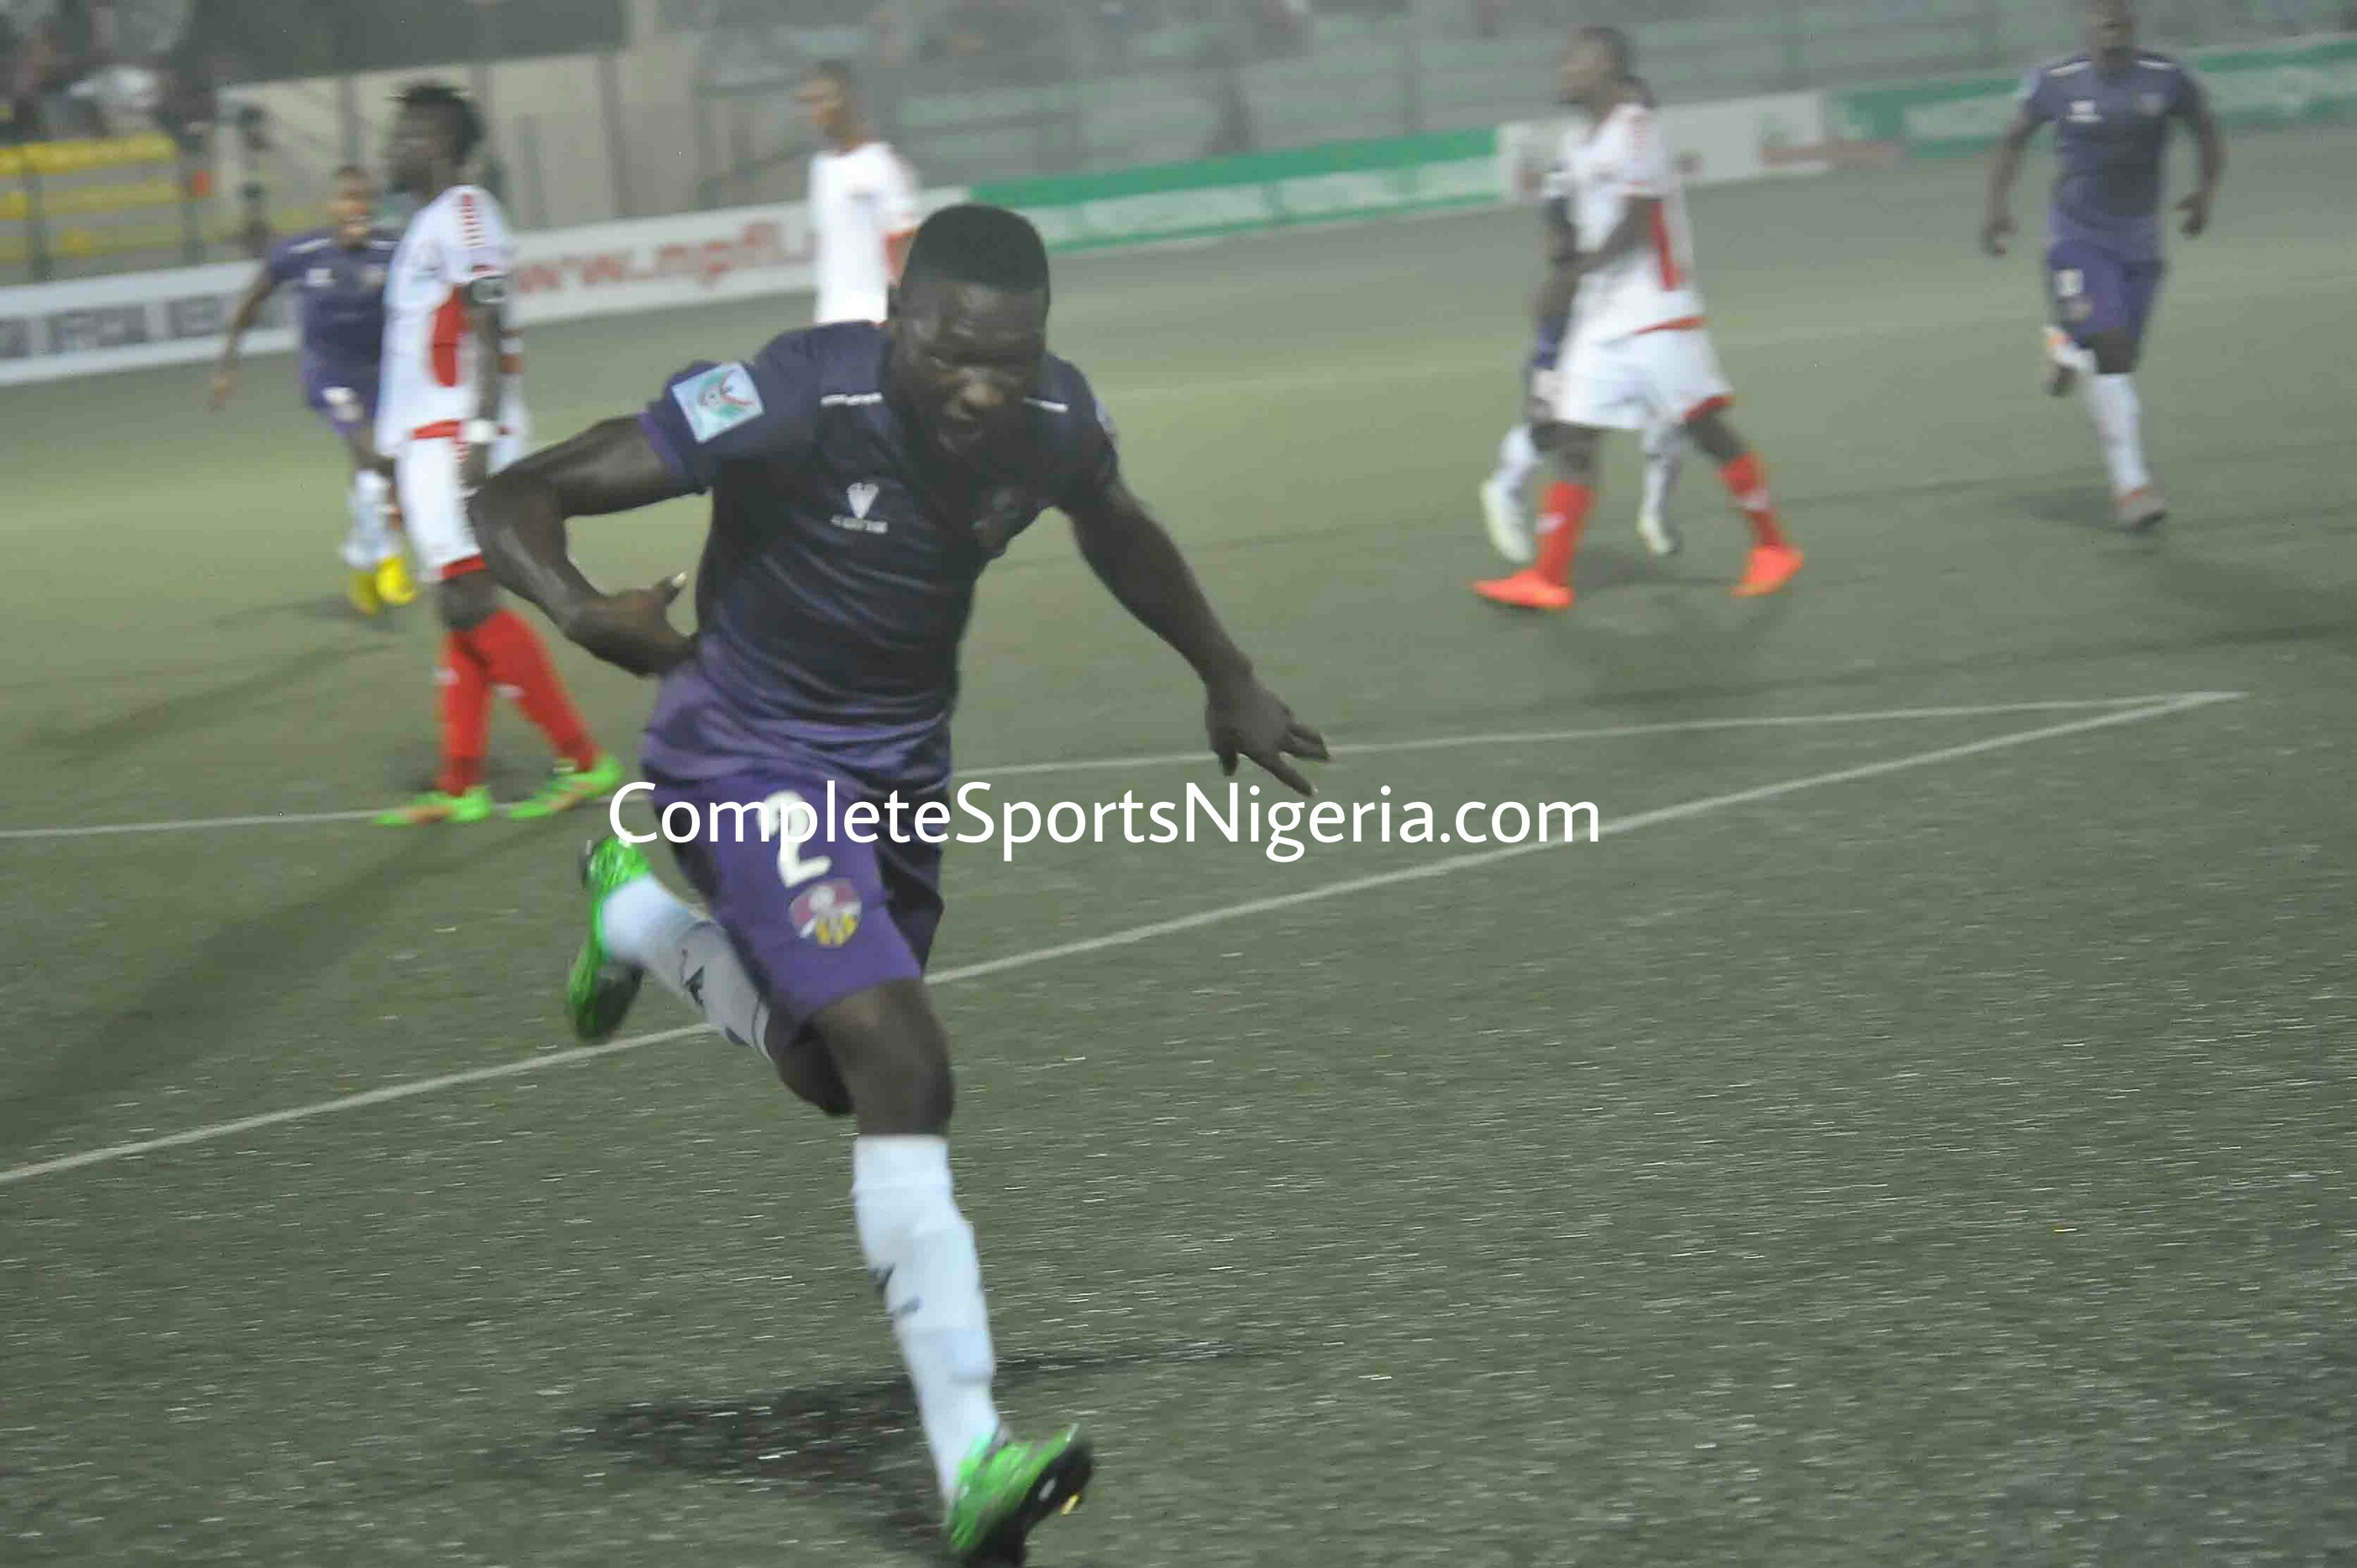 Olatunbosun's Wonder Goal Vs Rangers Nominated For CNN Award